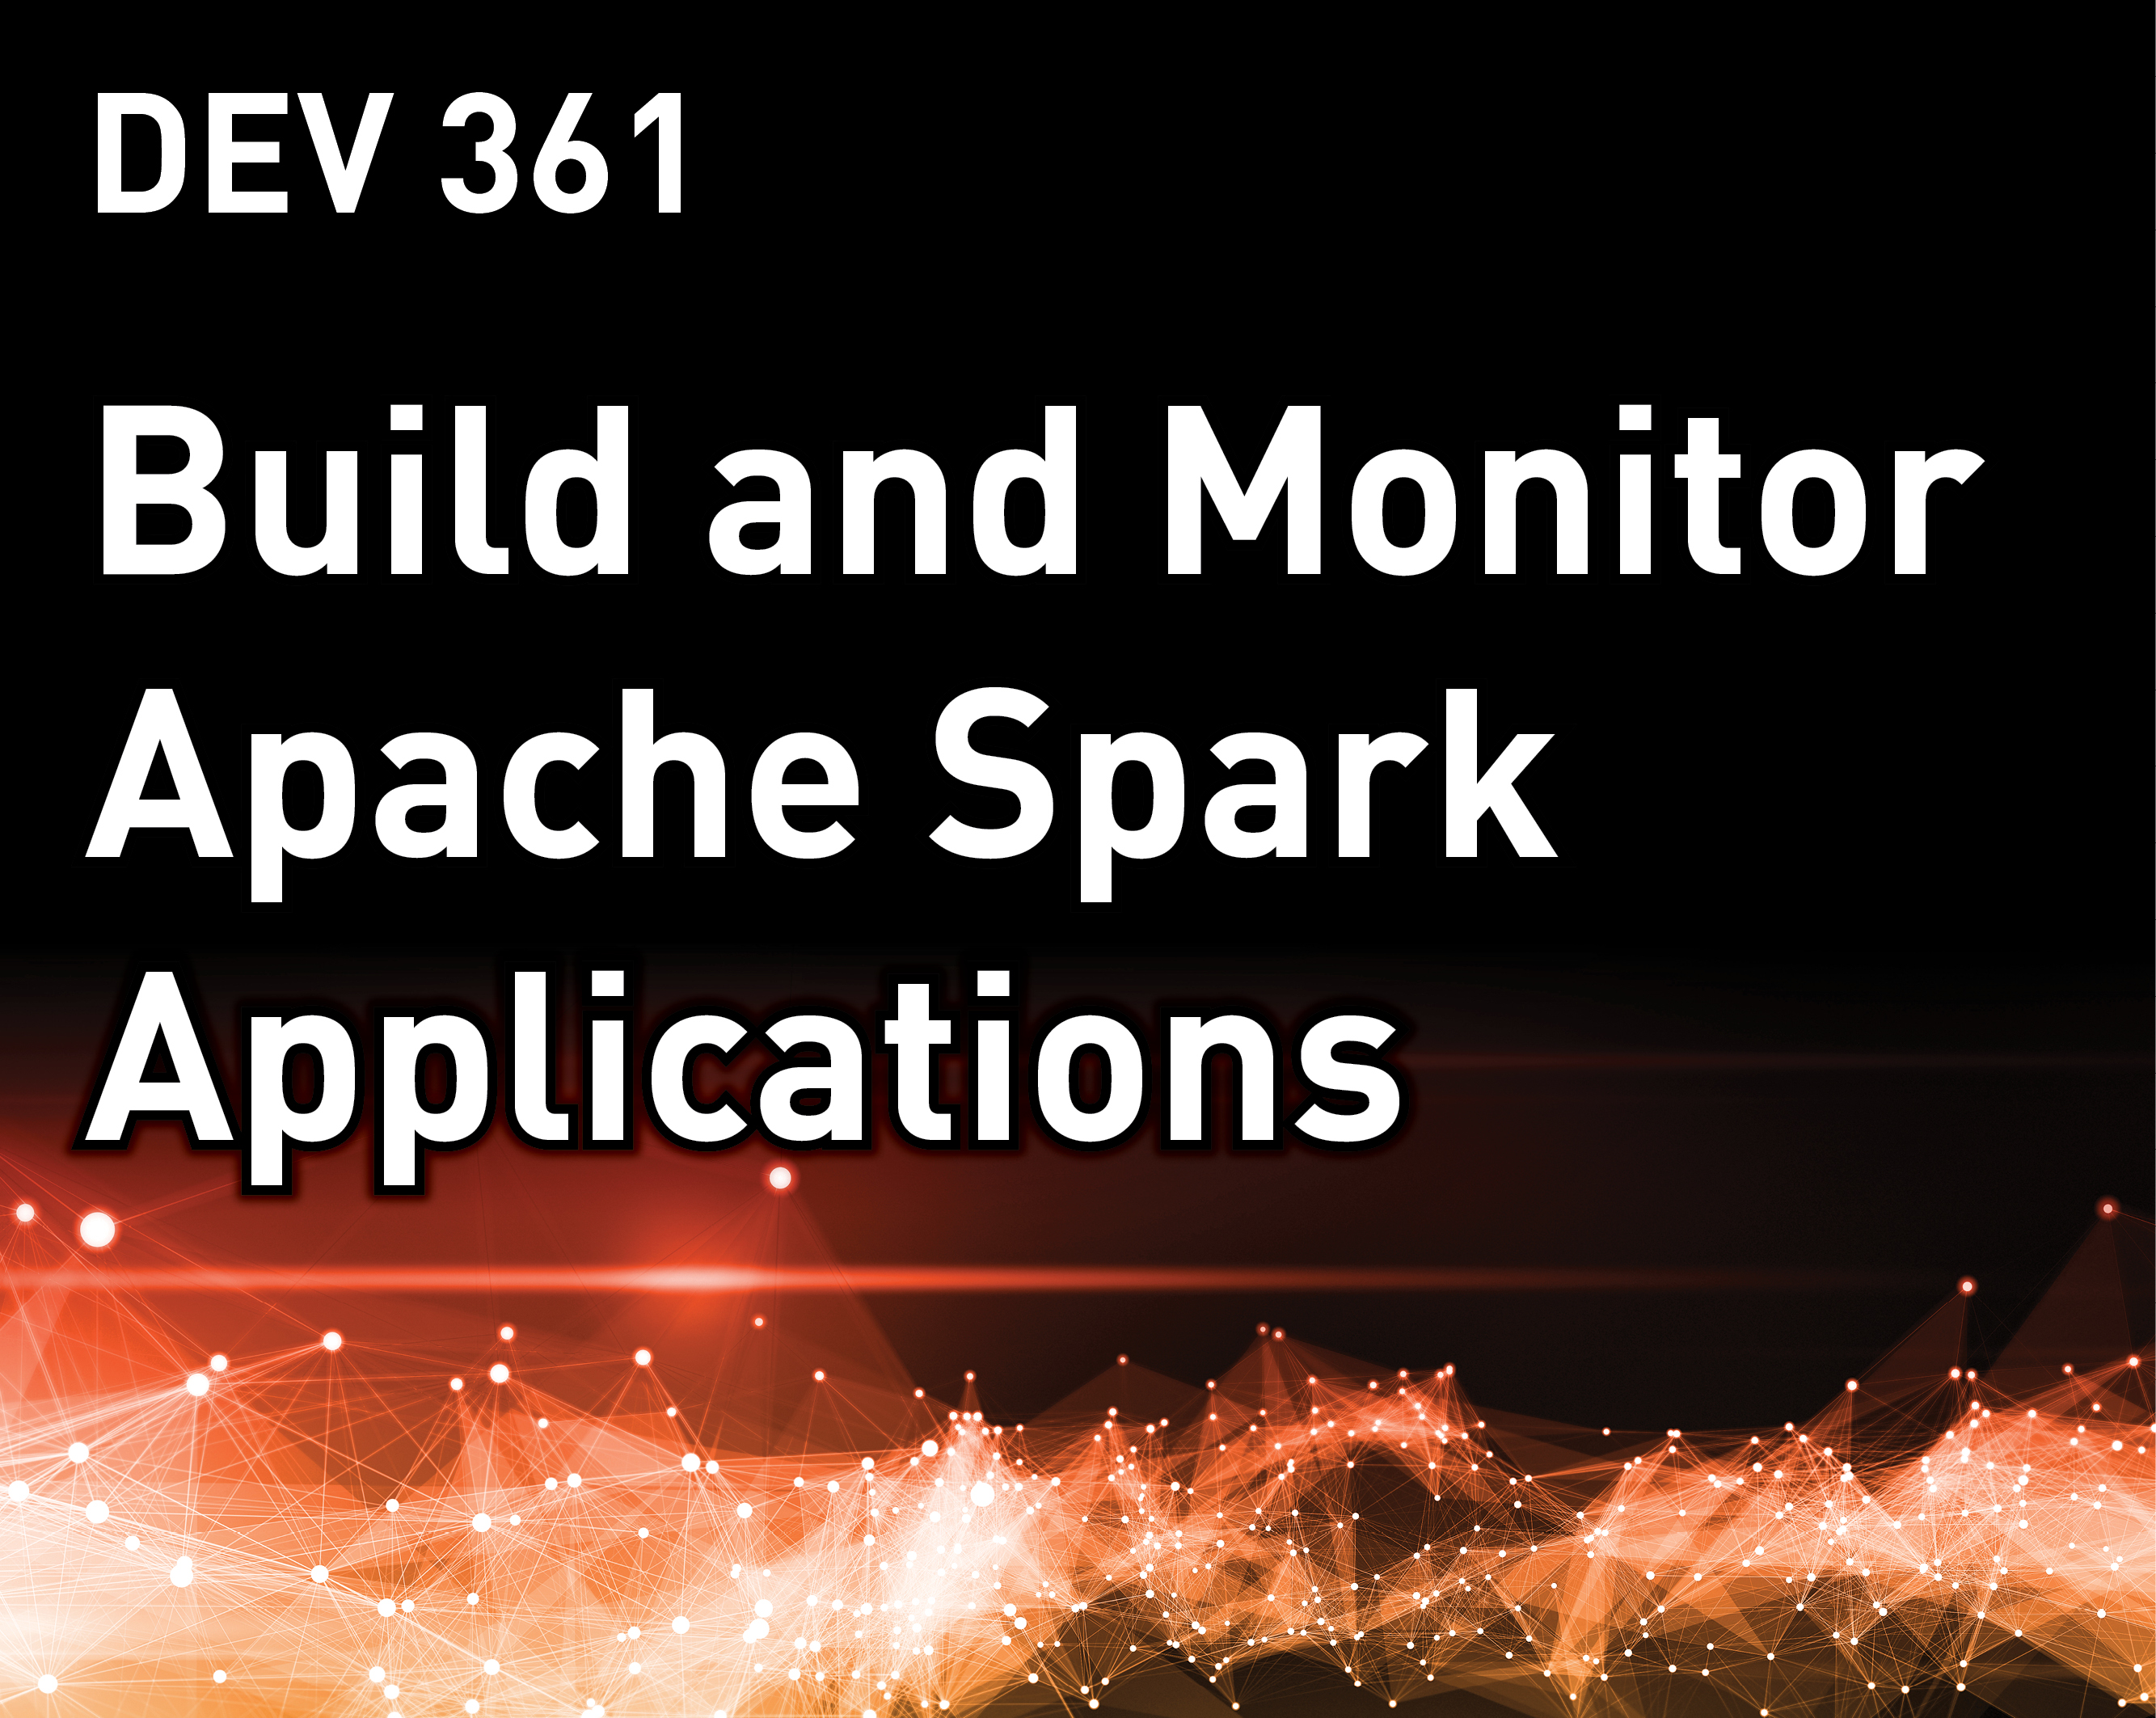 Build and Monitor Apache Spark Applications